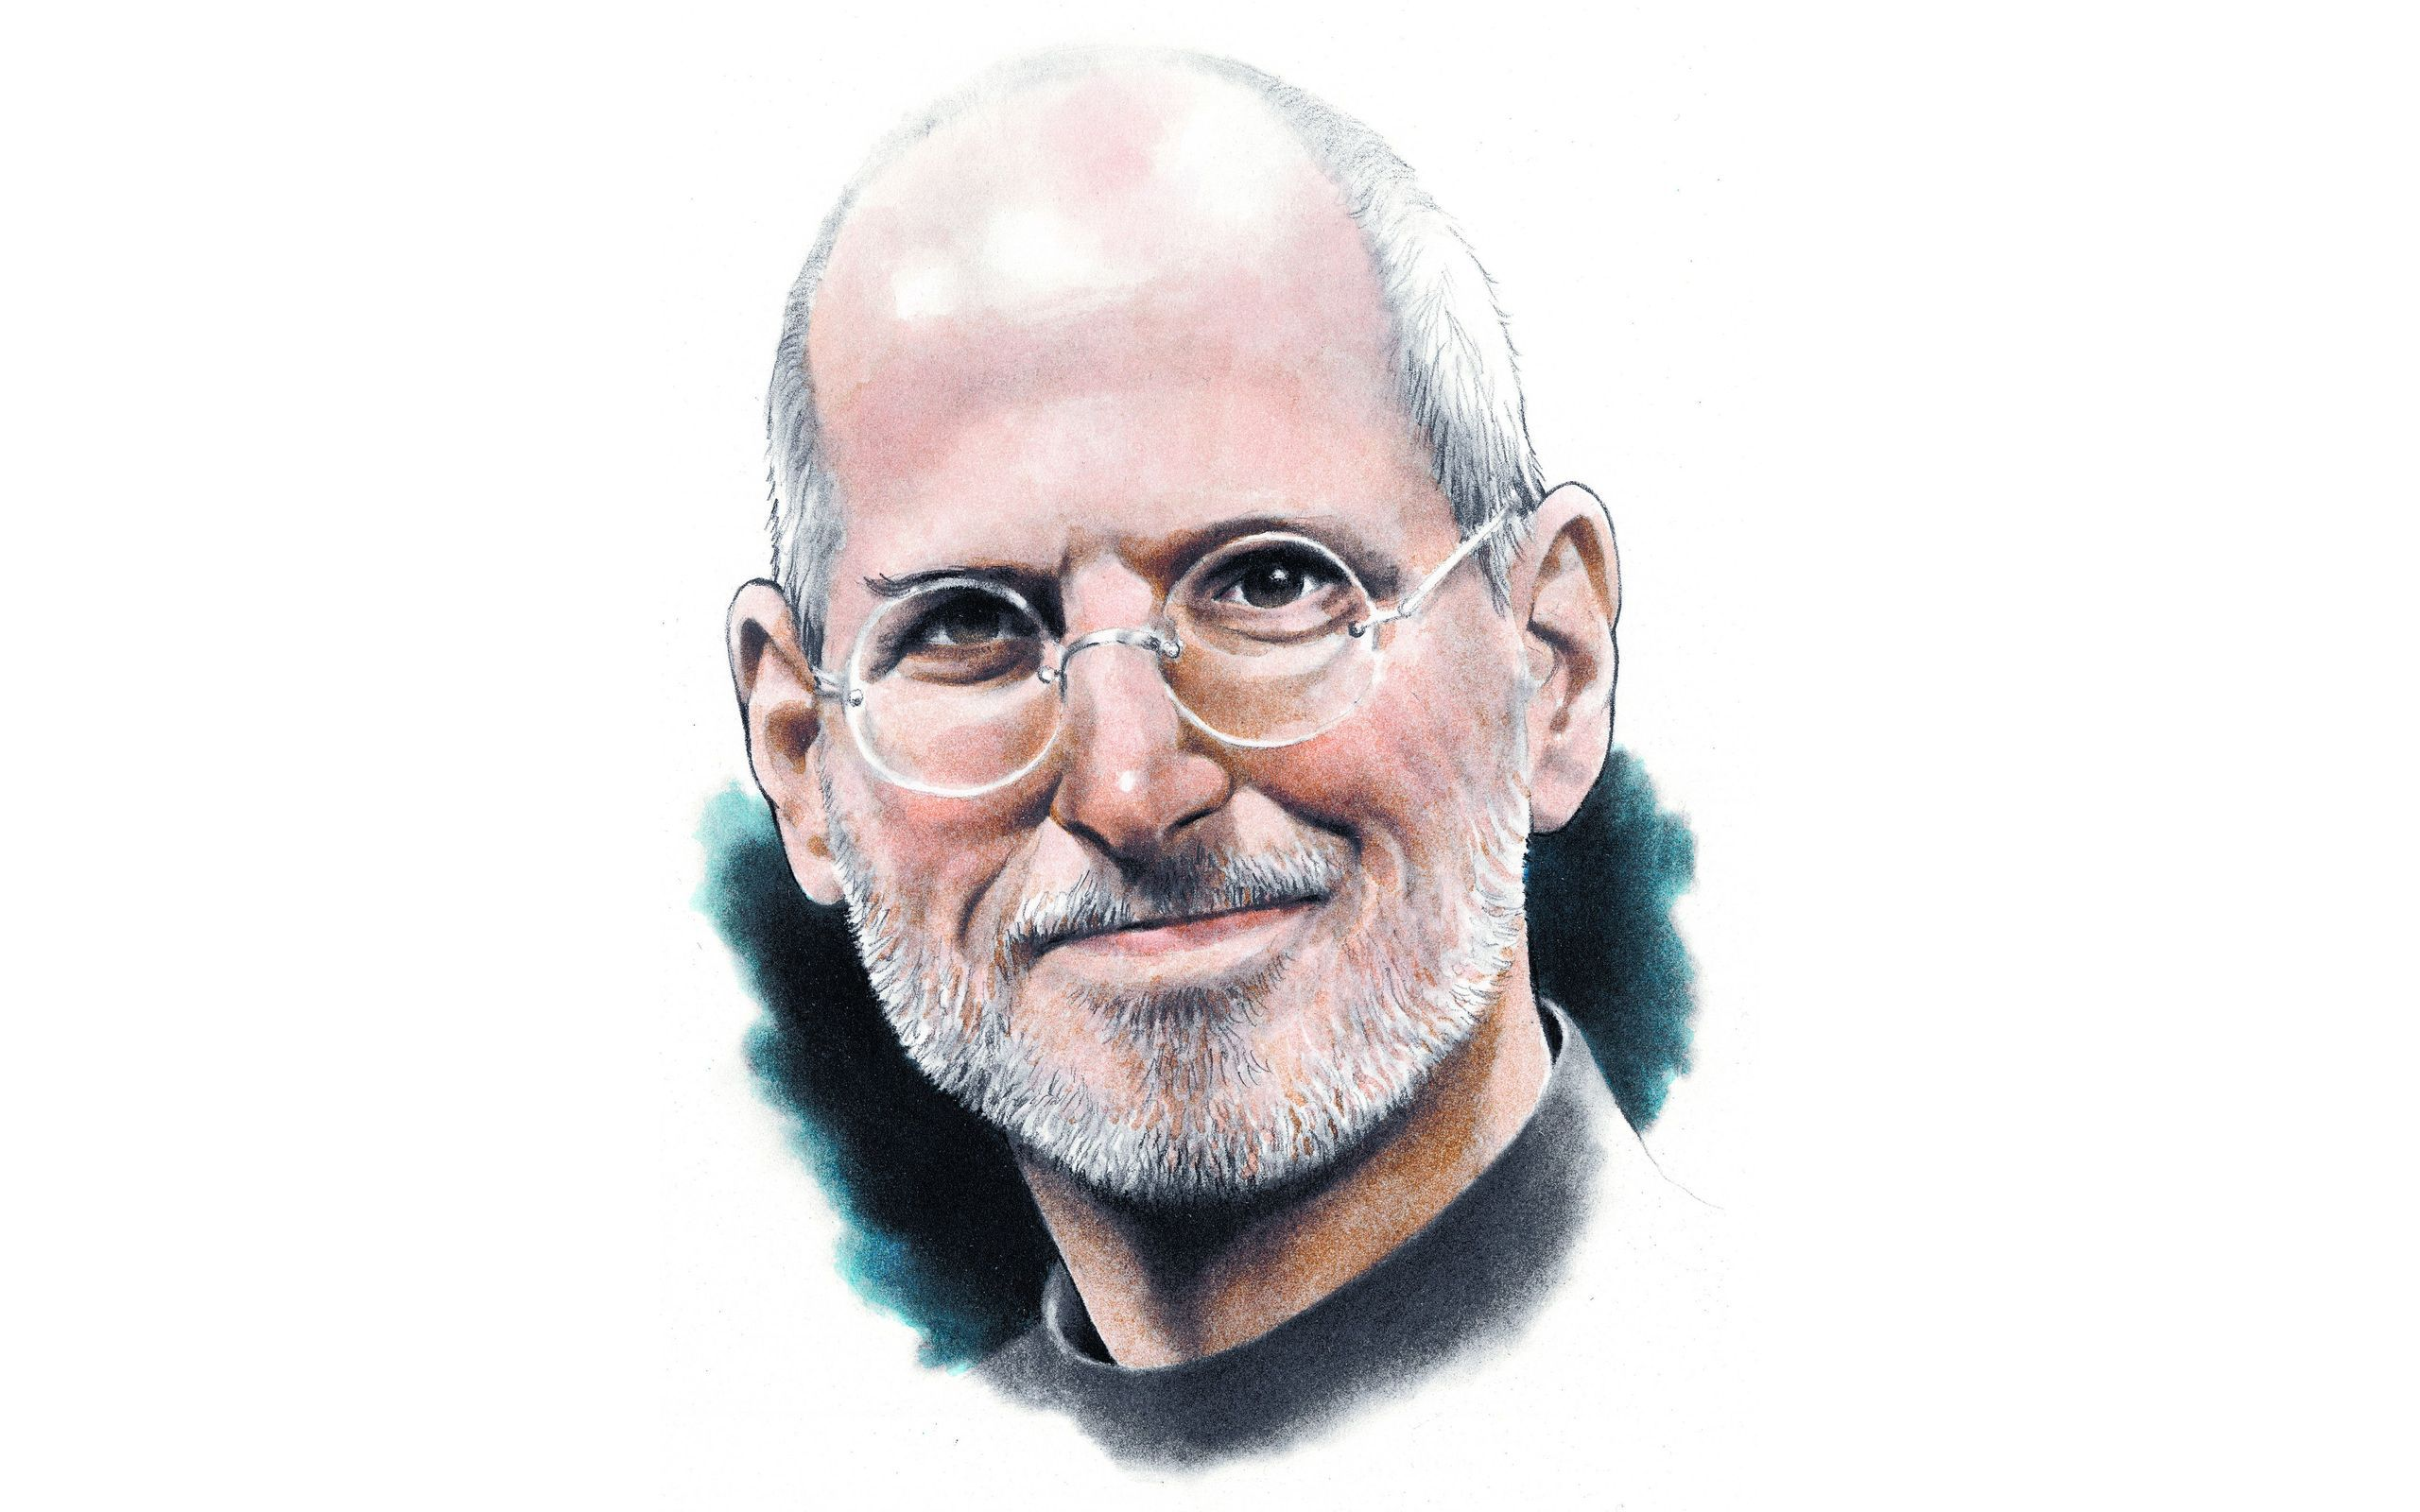 Steve Jobs Wallpapers Images Photos Pictures Backgrounds